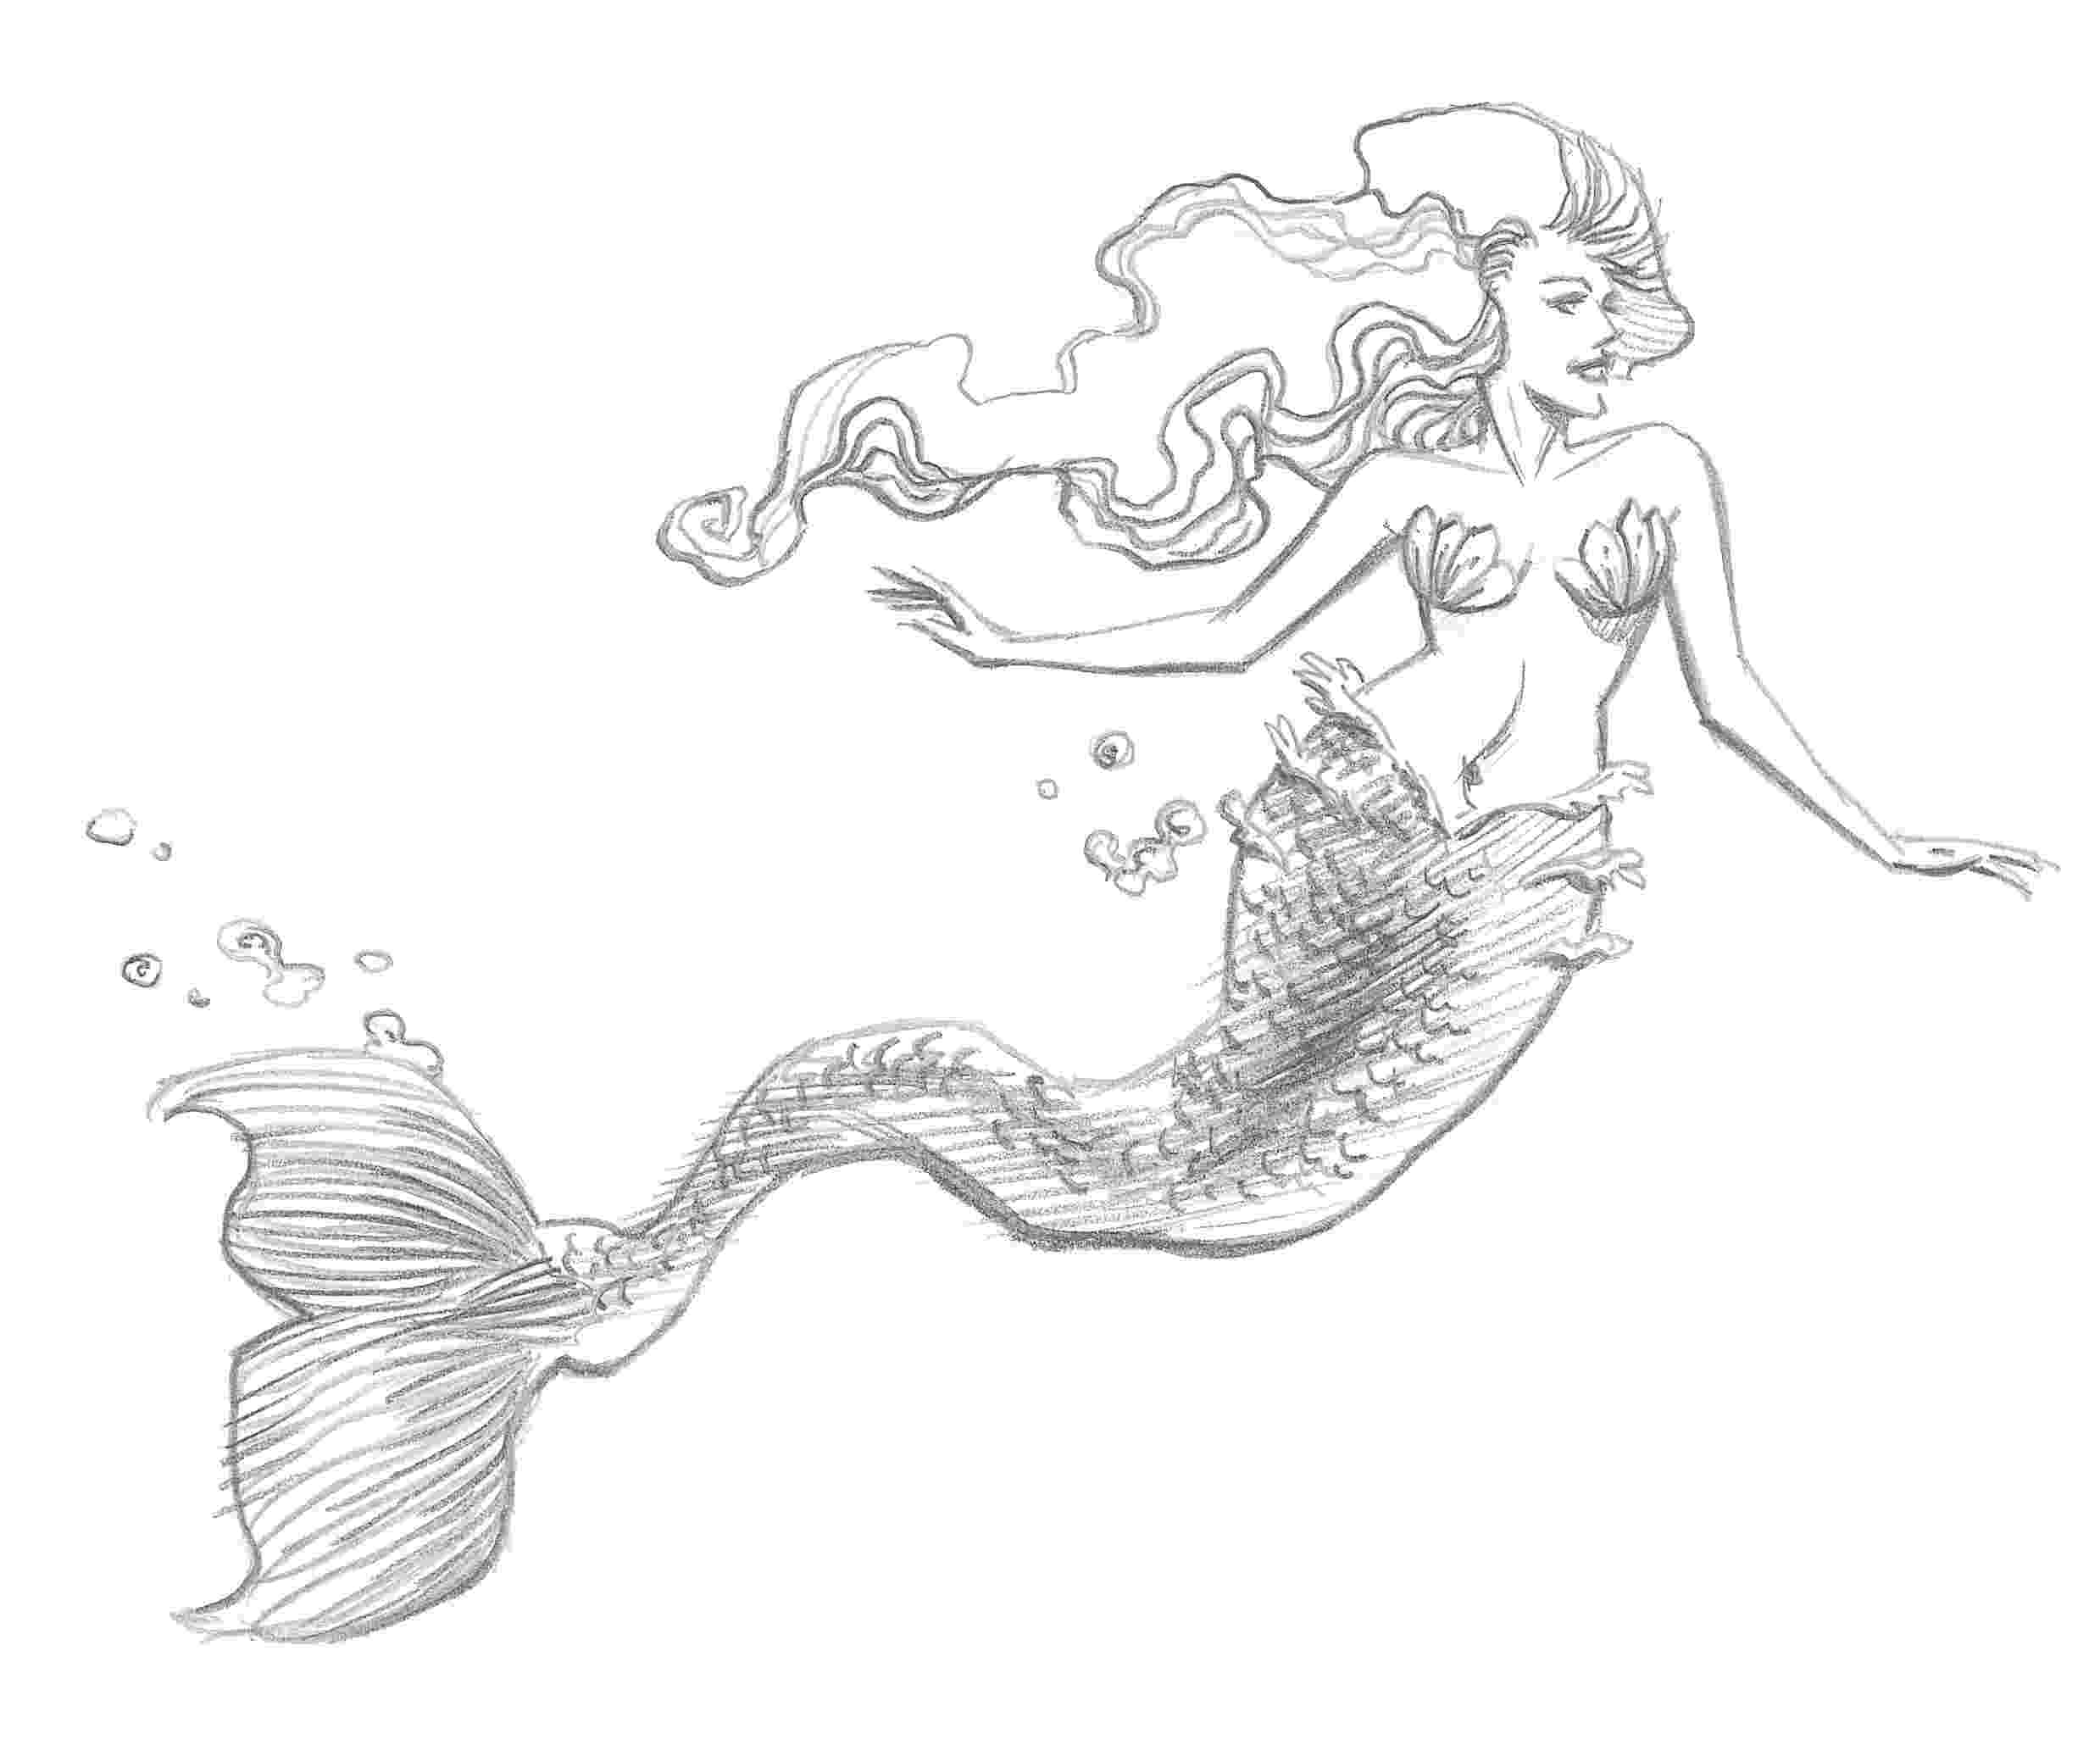 mermaids to draw mermaid extract from 50 things to draw by ed tadem how draw to mermaids